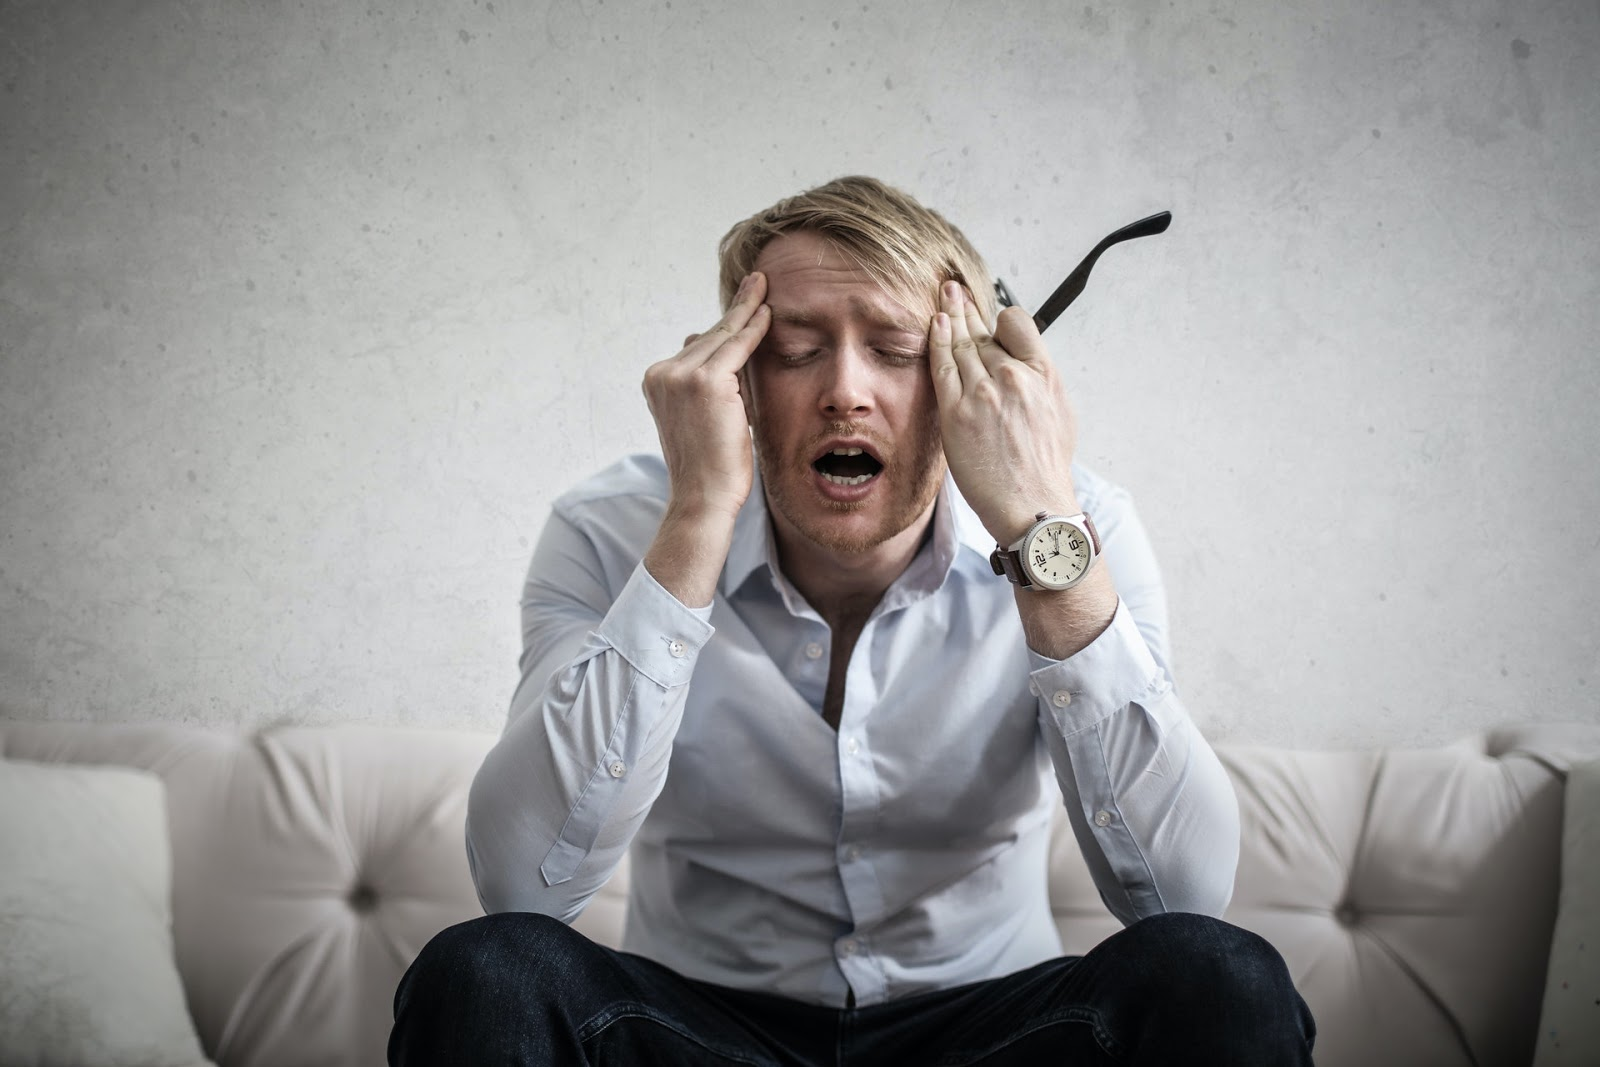 CBD Oil for Migraines & Headaches - Does It Work?